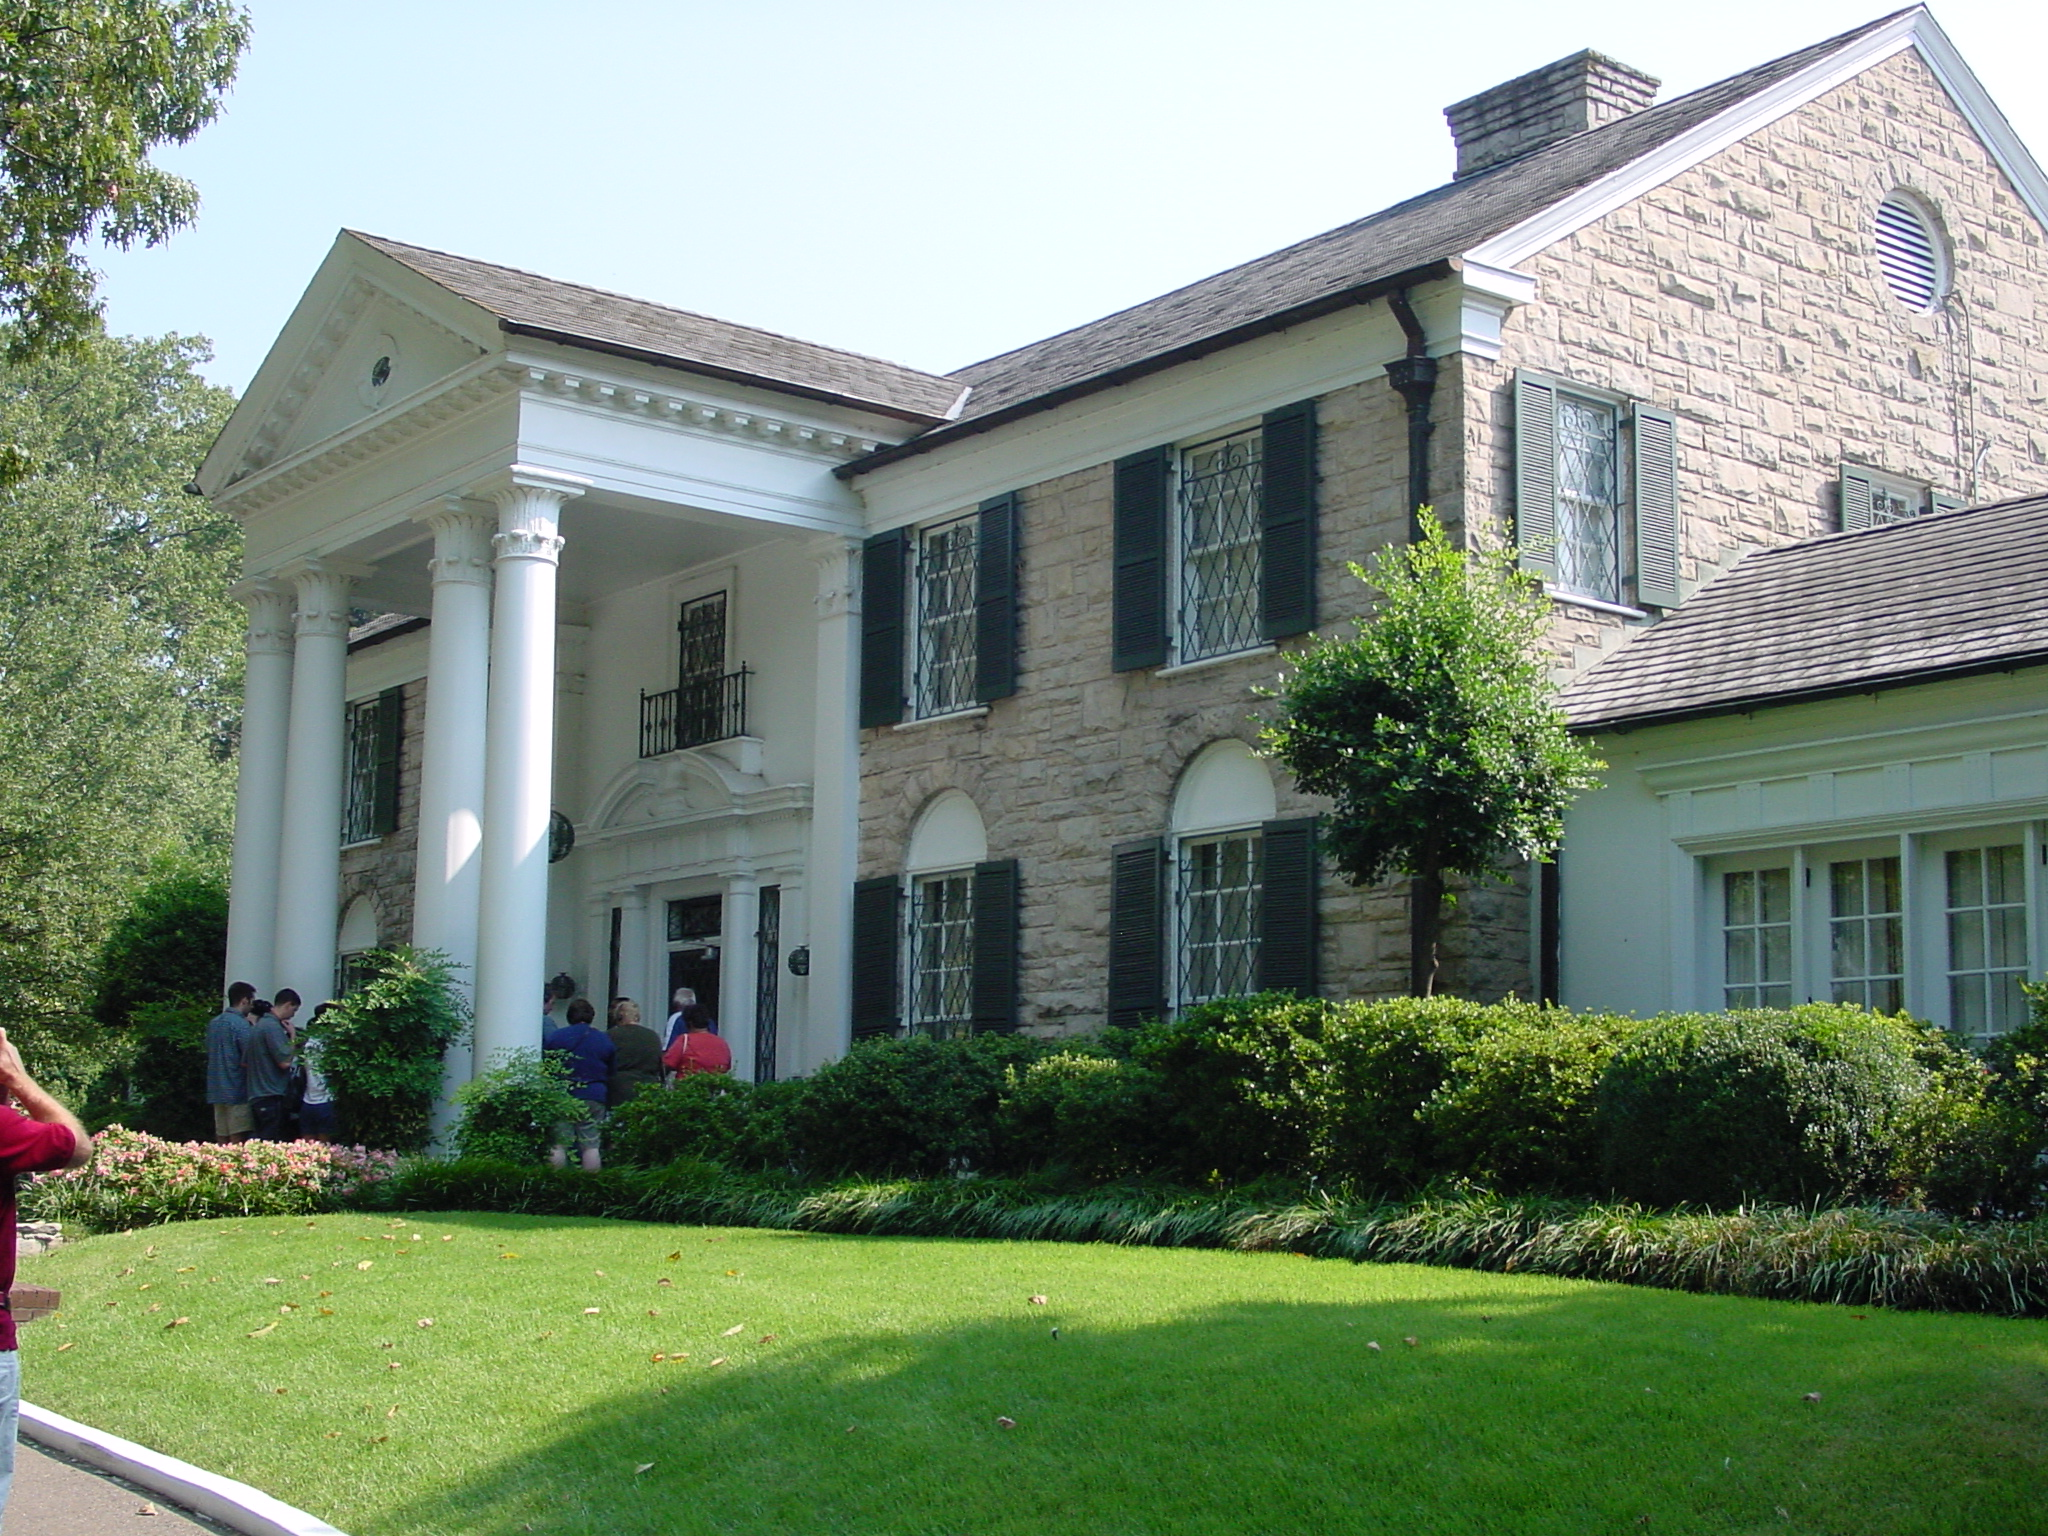 A Tour or Two... Maybe Half a Dozen Tours of Graceland